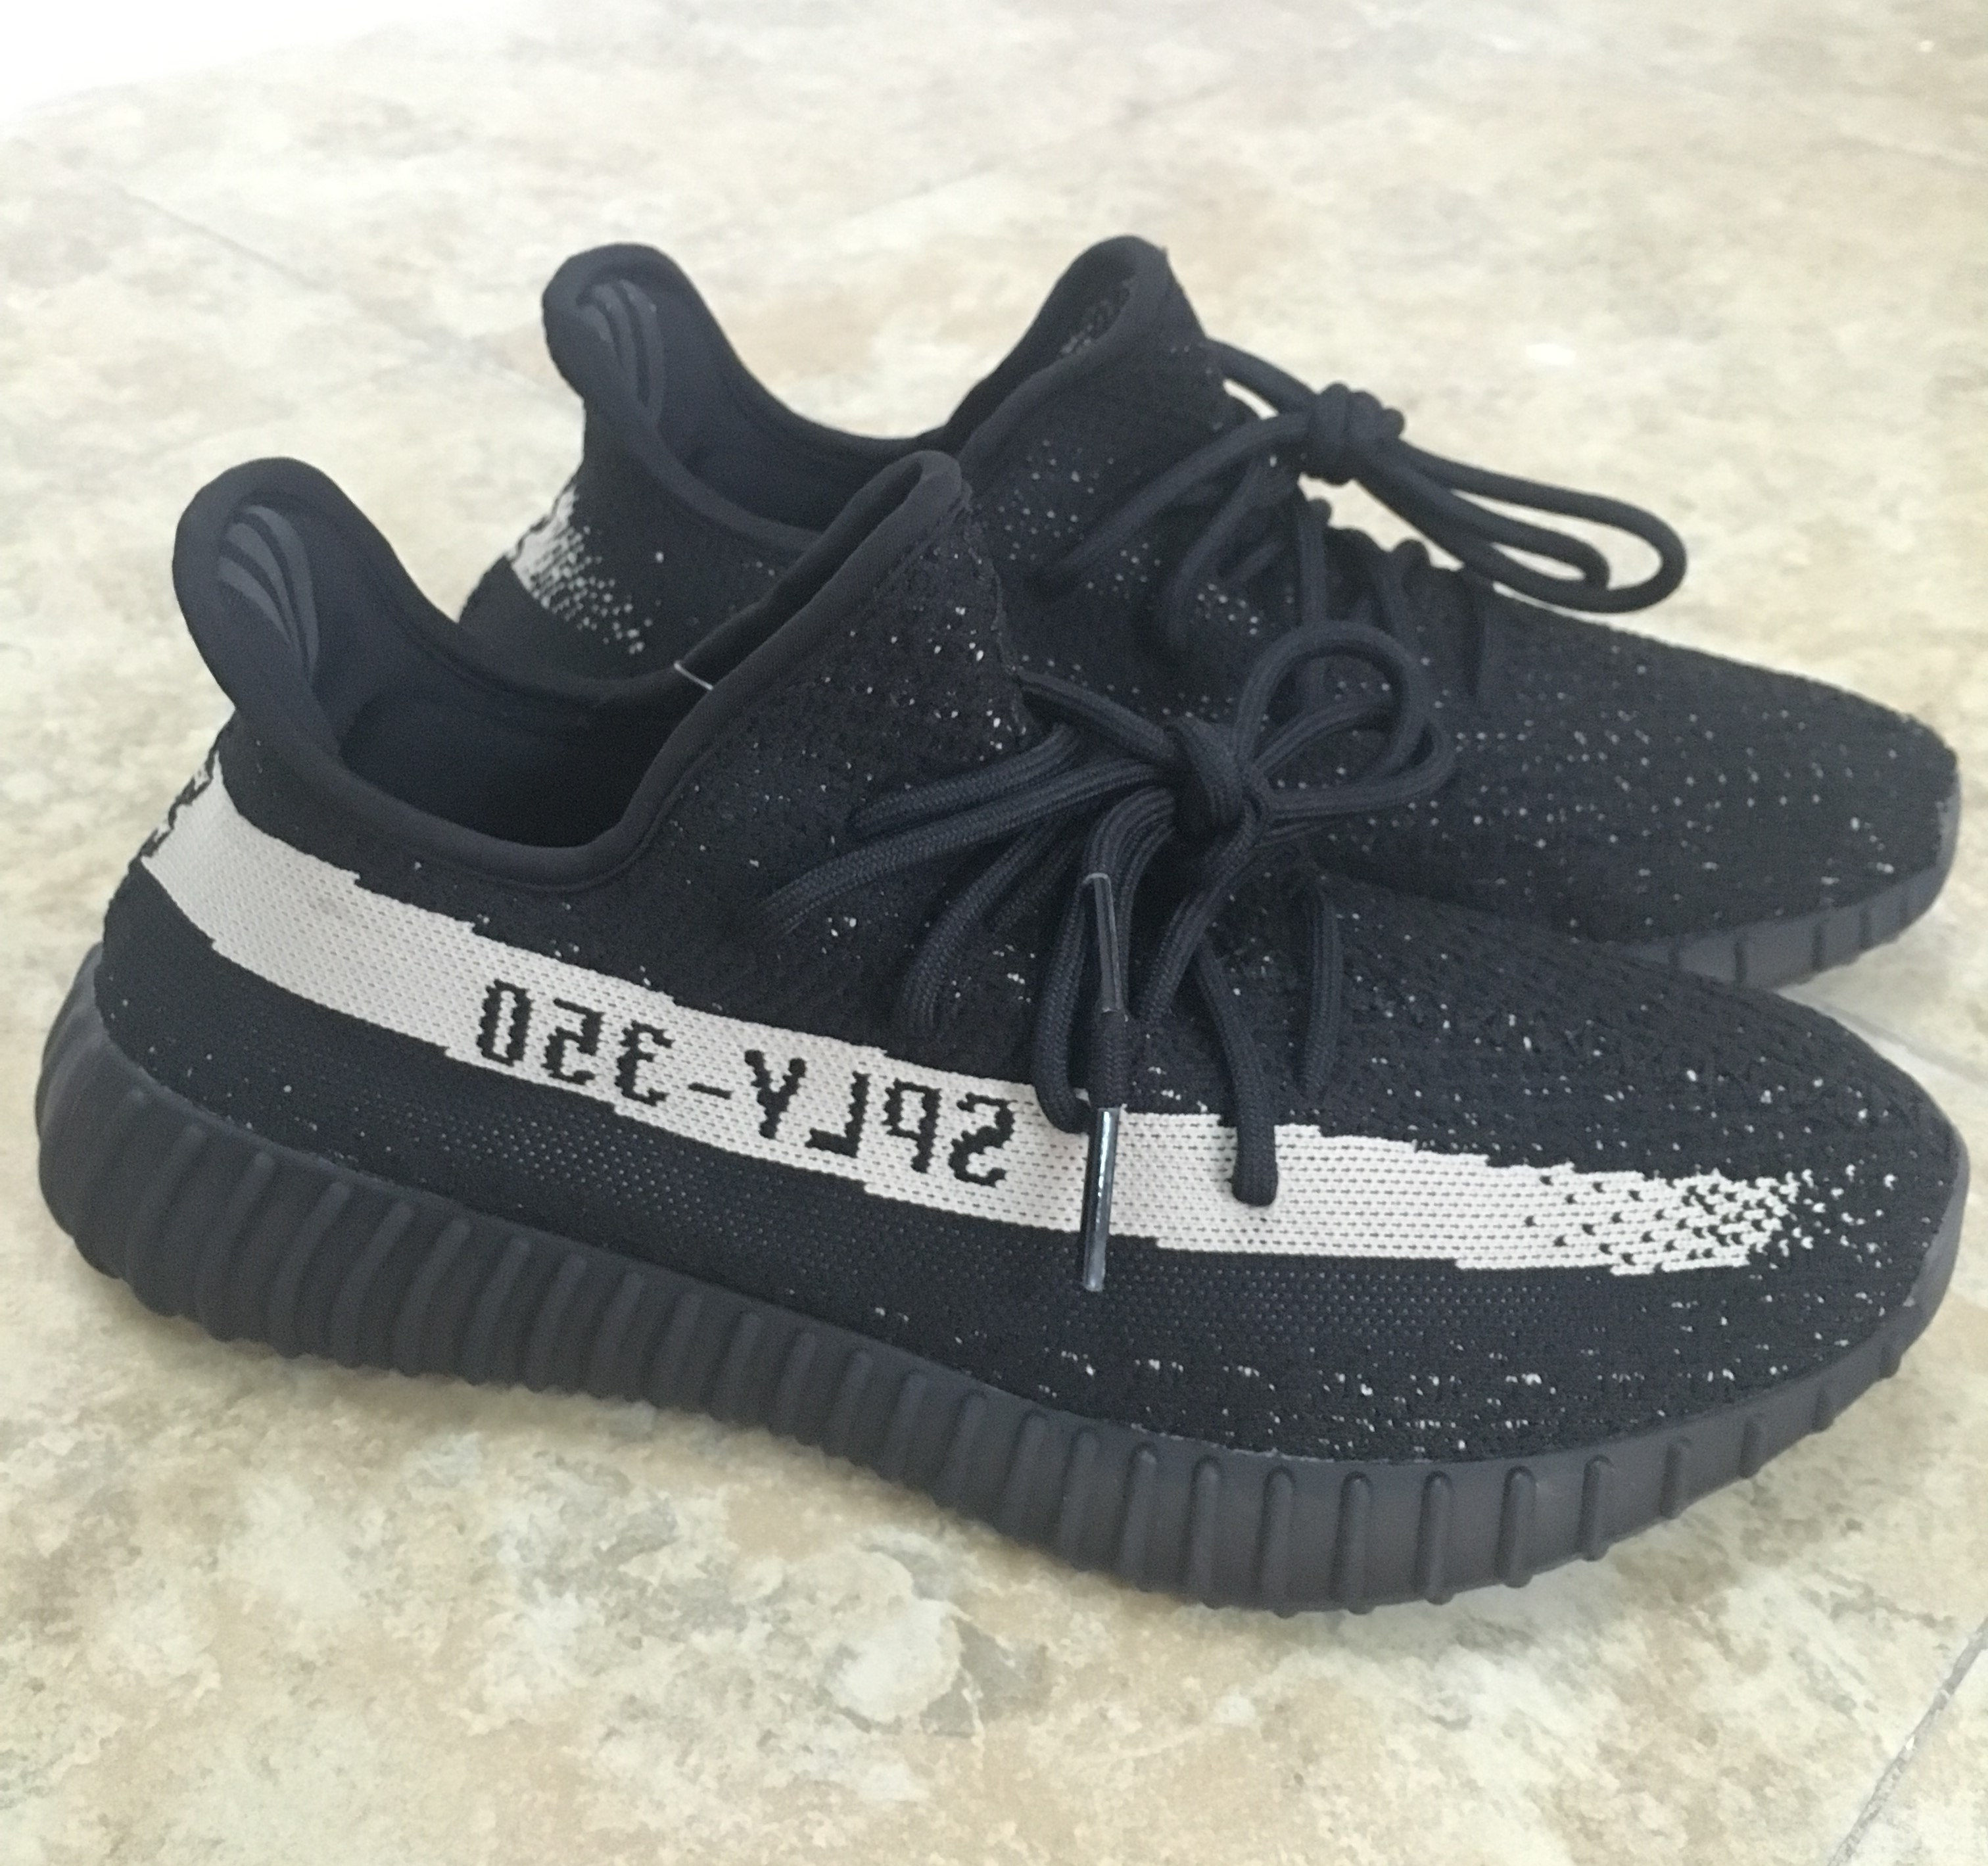 81ed4b47 Adidas Yeezy SPLY 350 Boost V2 Oreo Boost / Black White - Welcome To ...